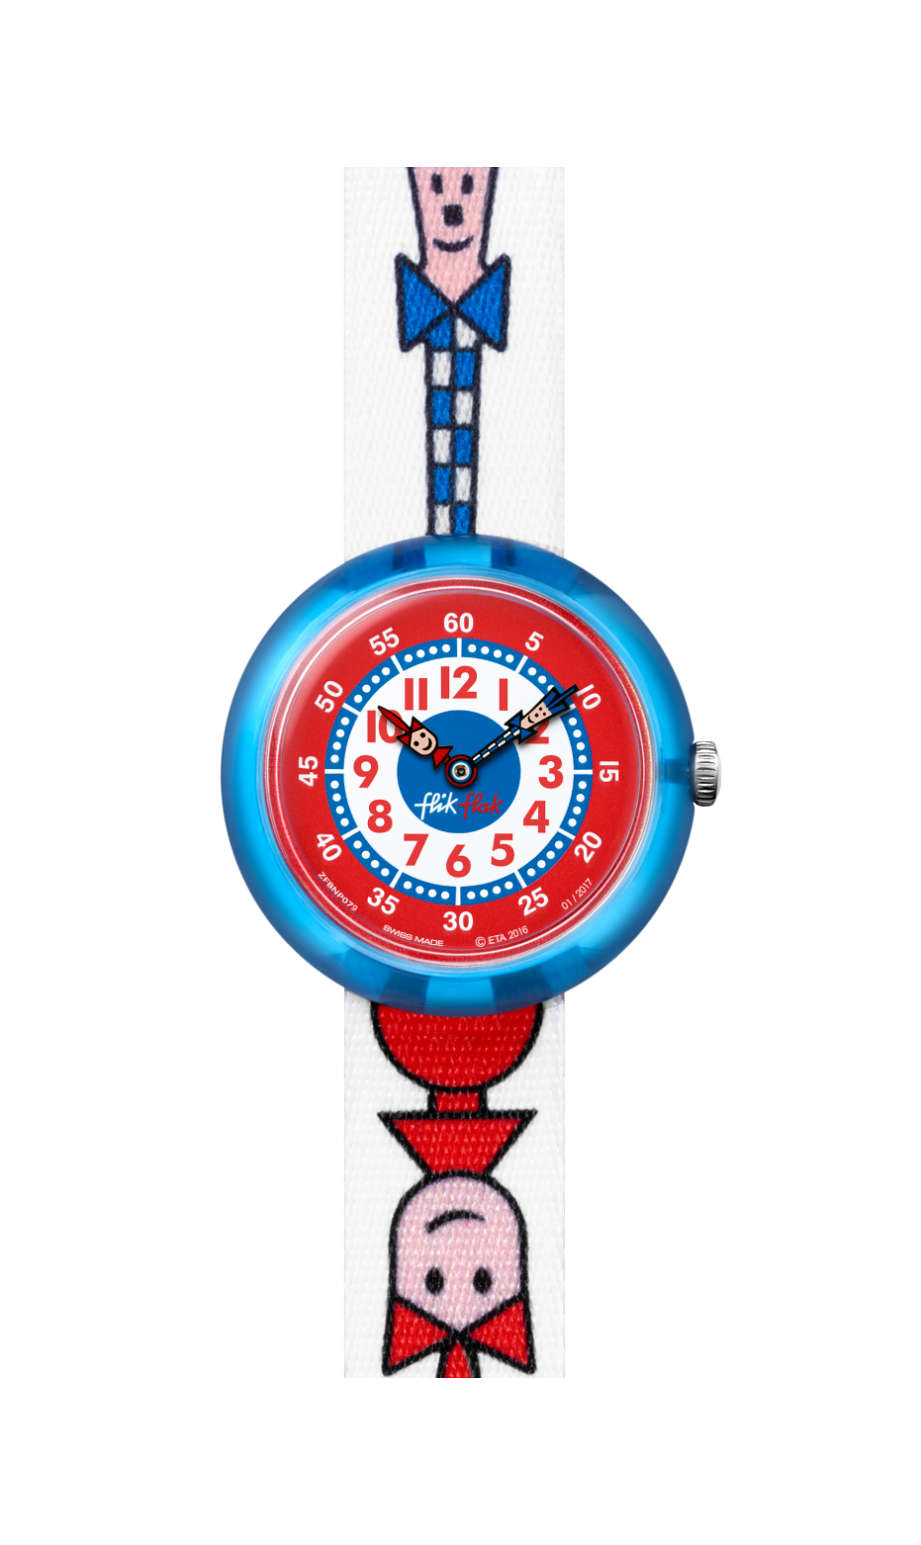 Swatch - TICKING RIGHT - 1